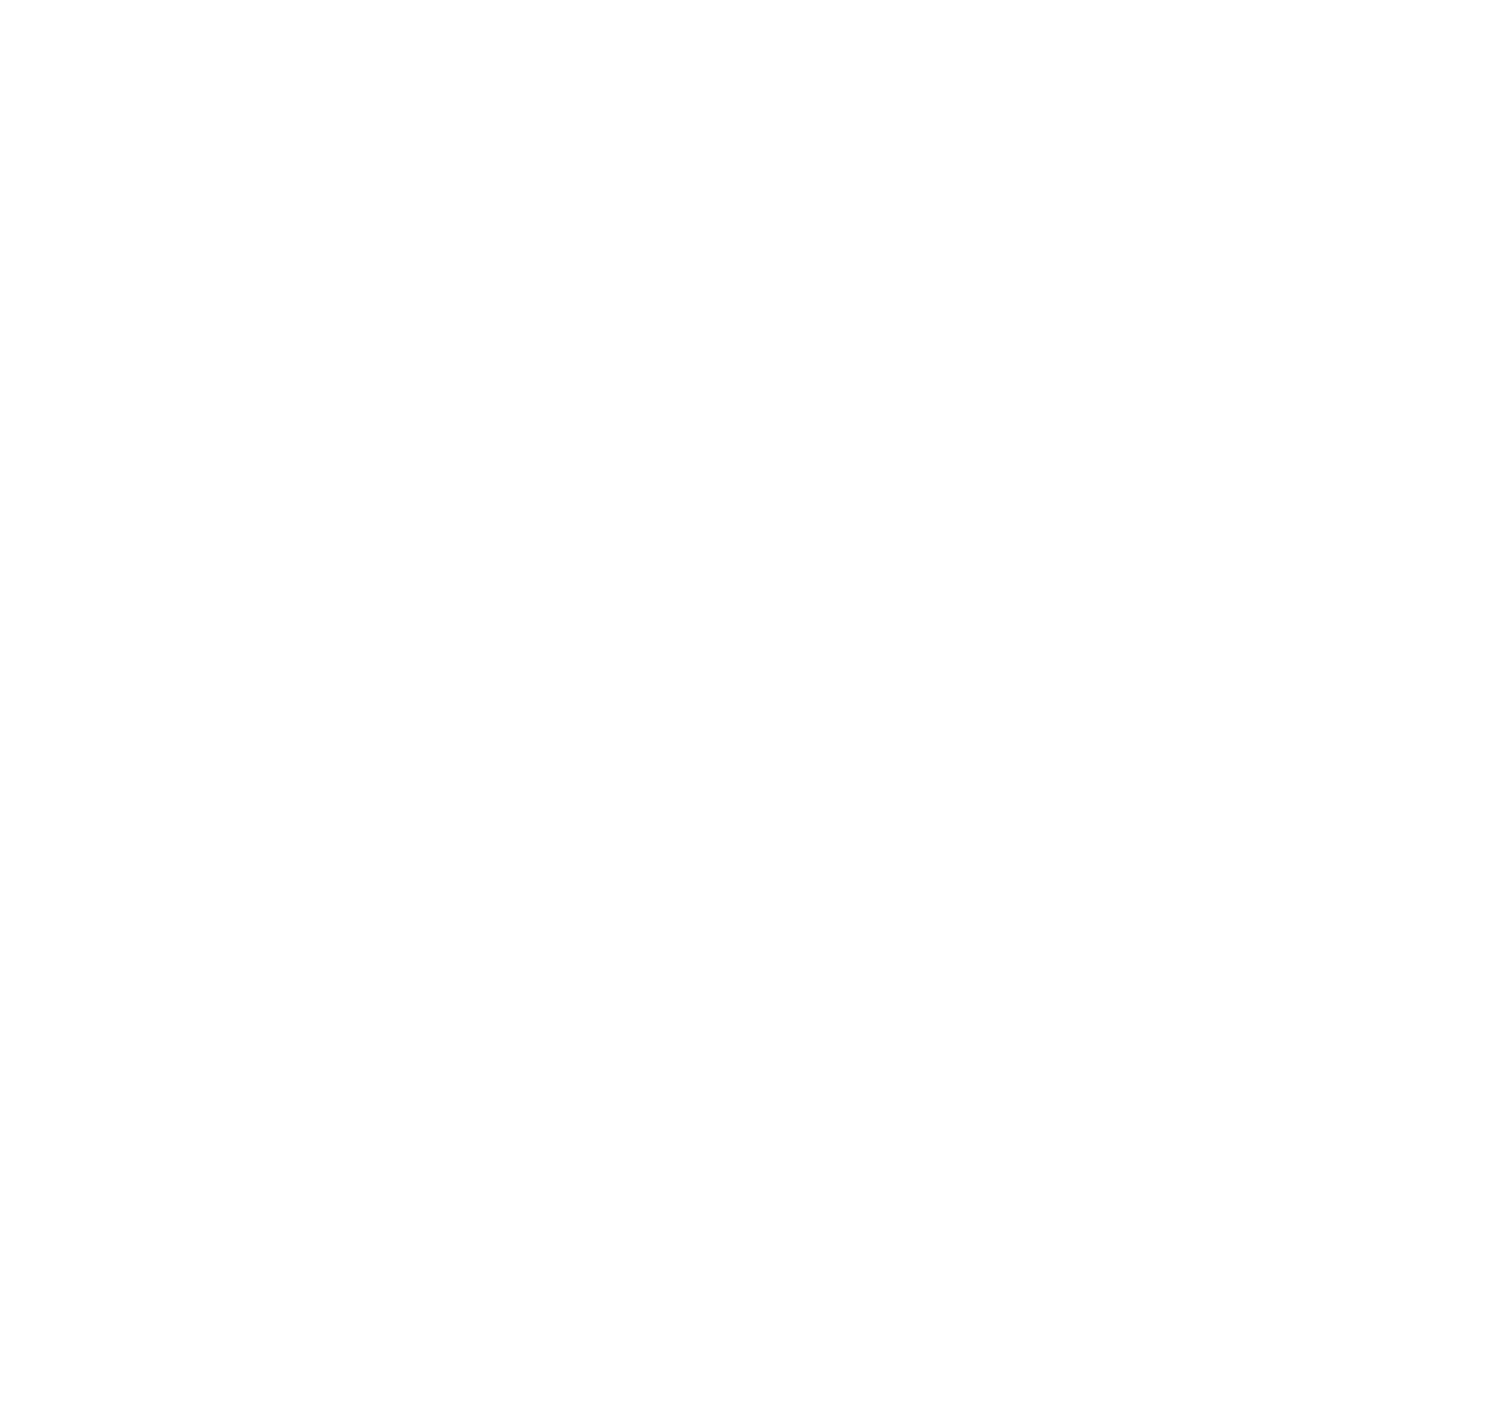 Roots Whole Health